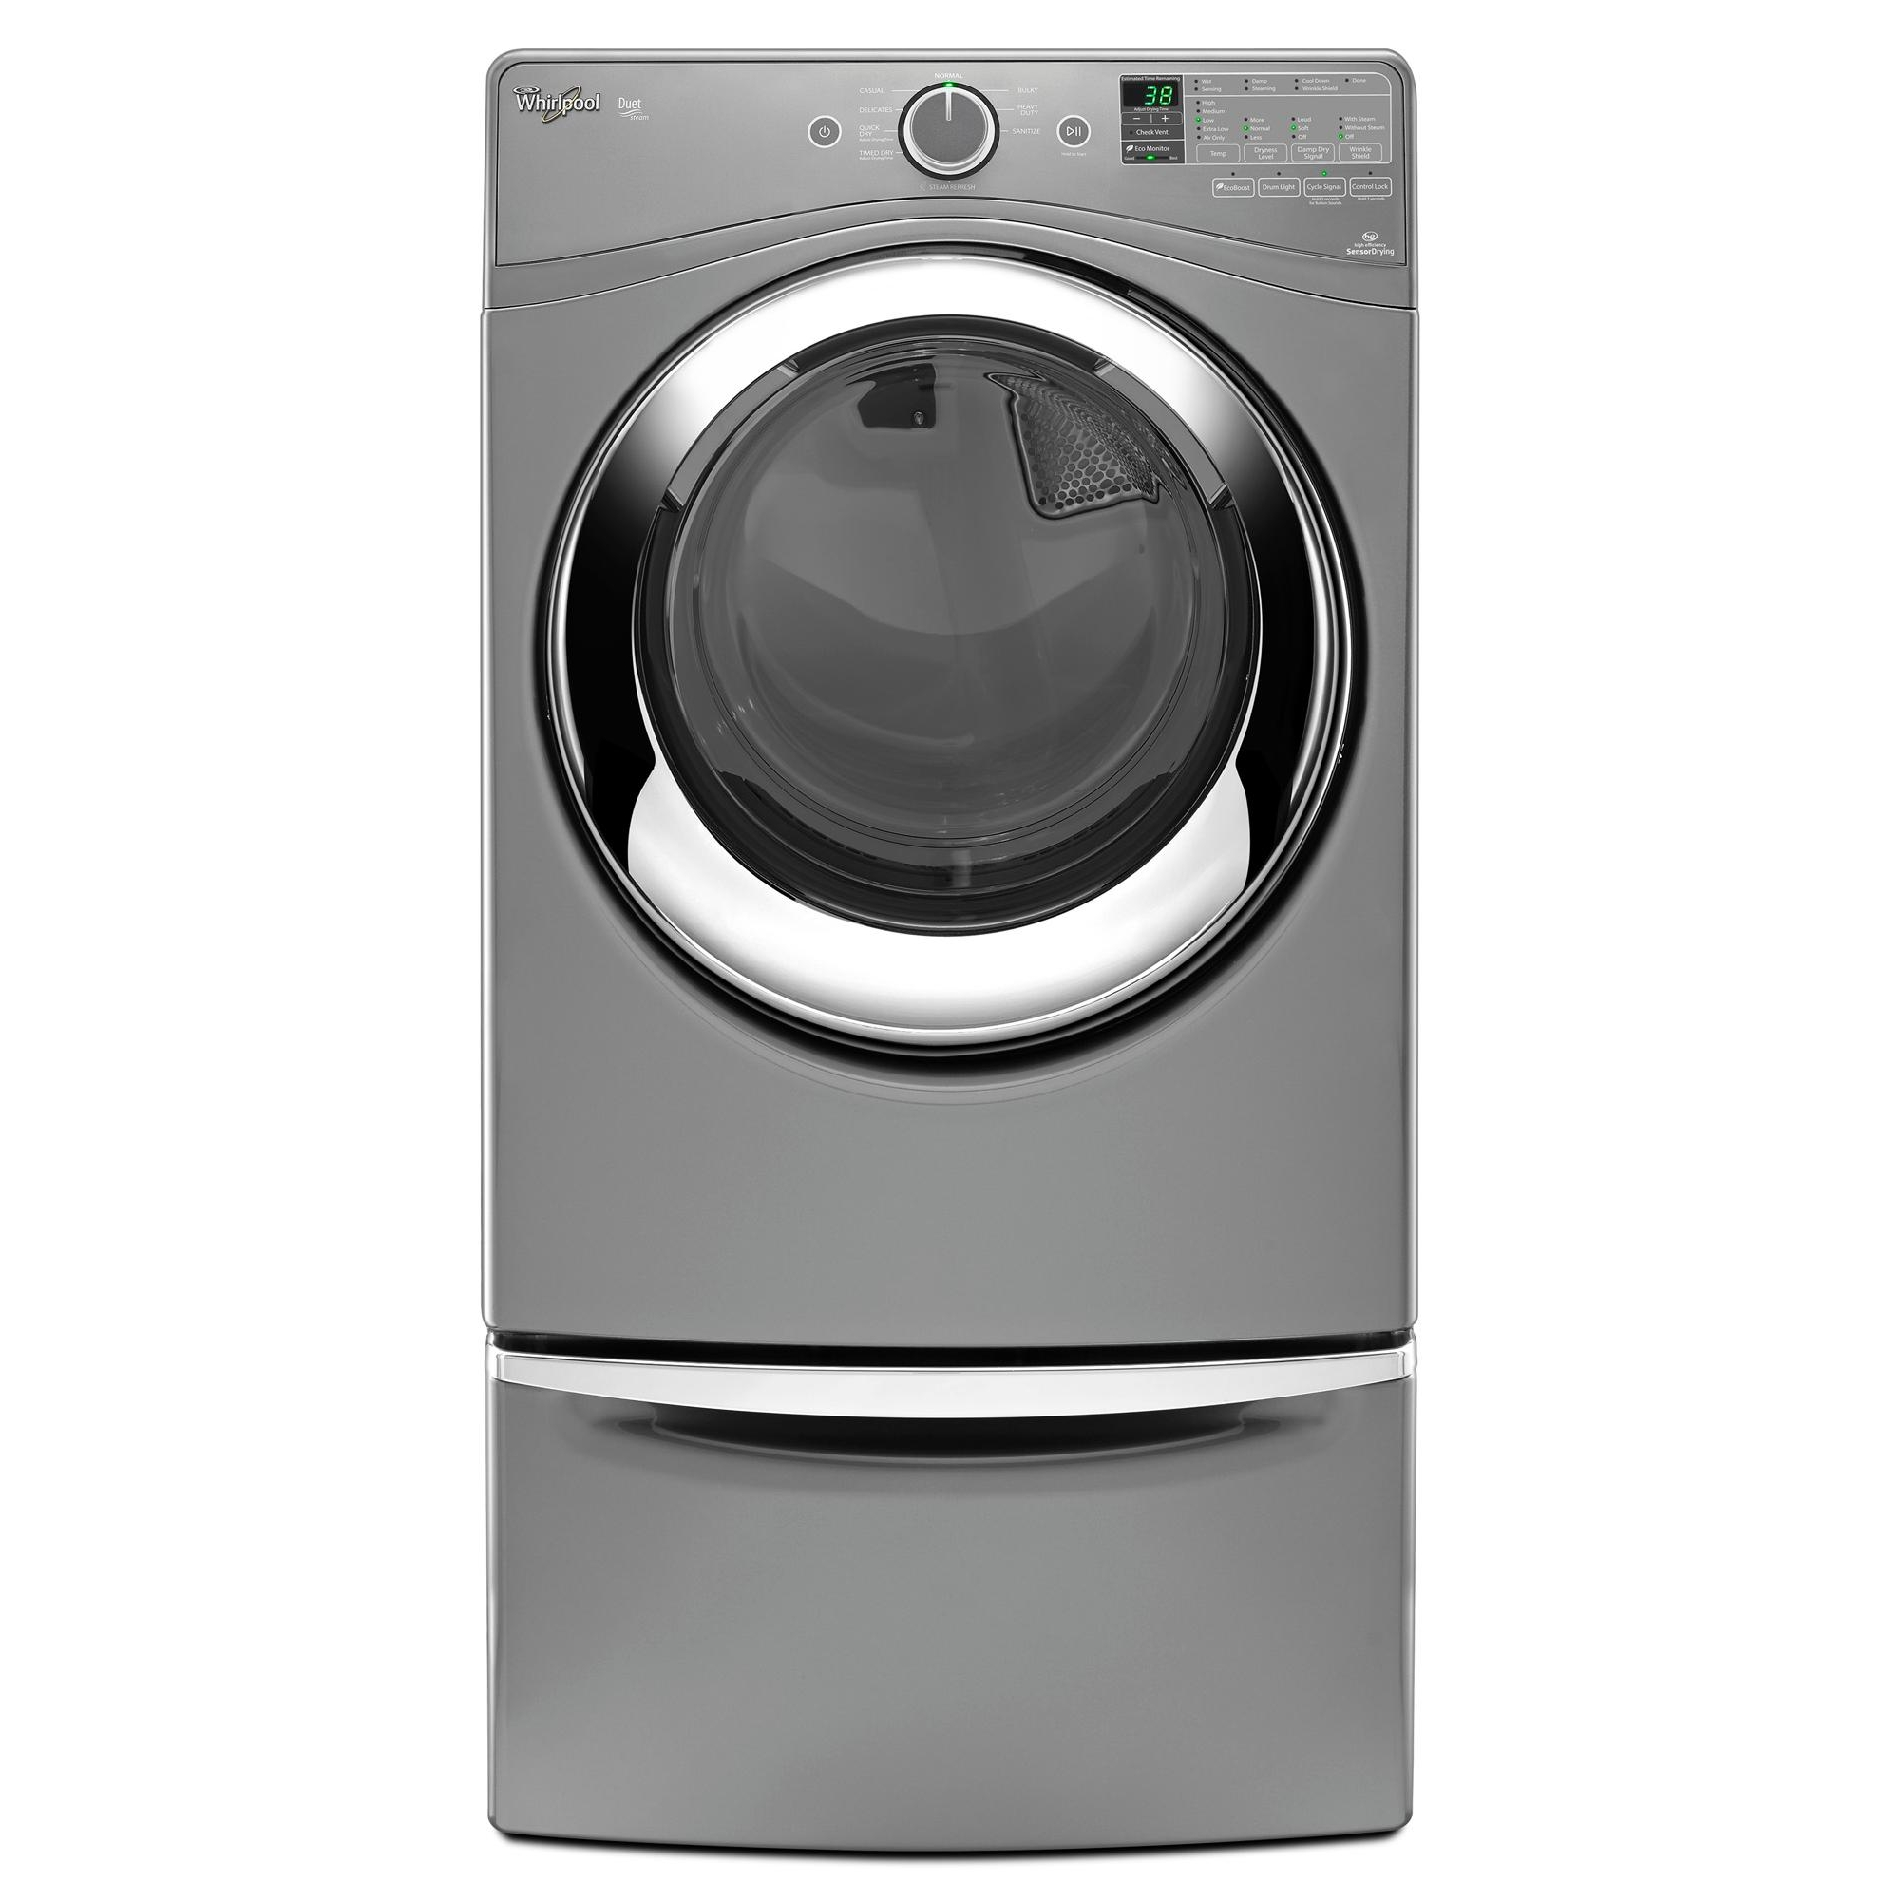 Whirlpool WED87HEDC 7.4 cu. ft. Duet® Electric Dryer w/ Steam Refresh - Chrome Shadow